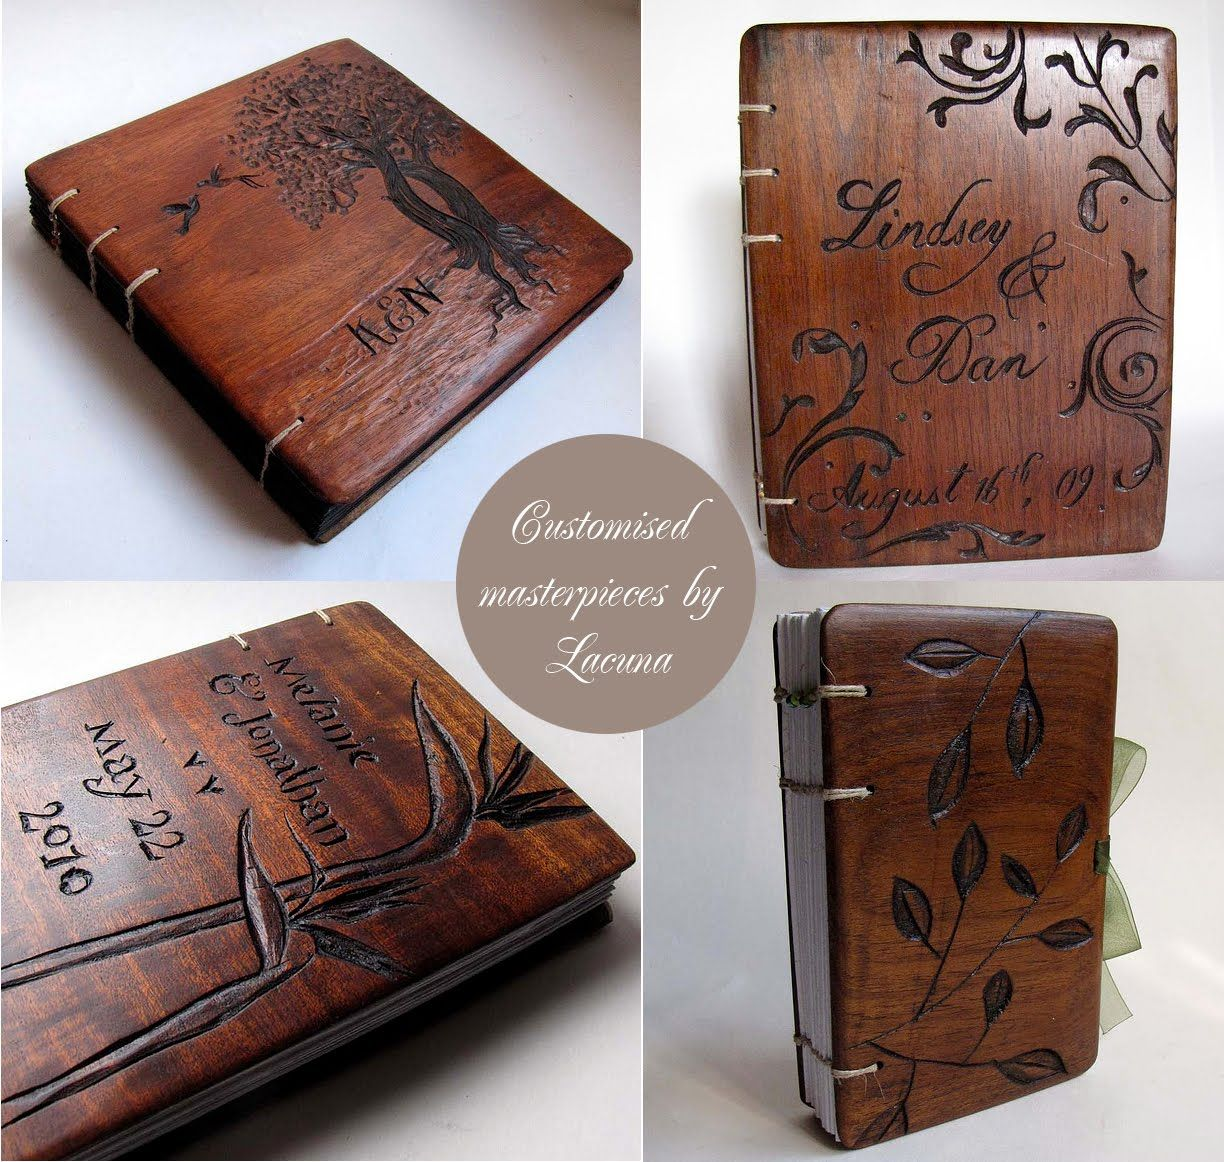 Artnlight Wooden Book Covers By Lacuna Works Wooden Books Homemade Books Handmade Books